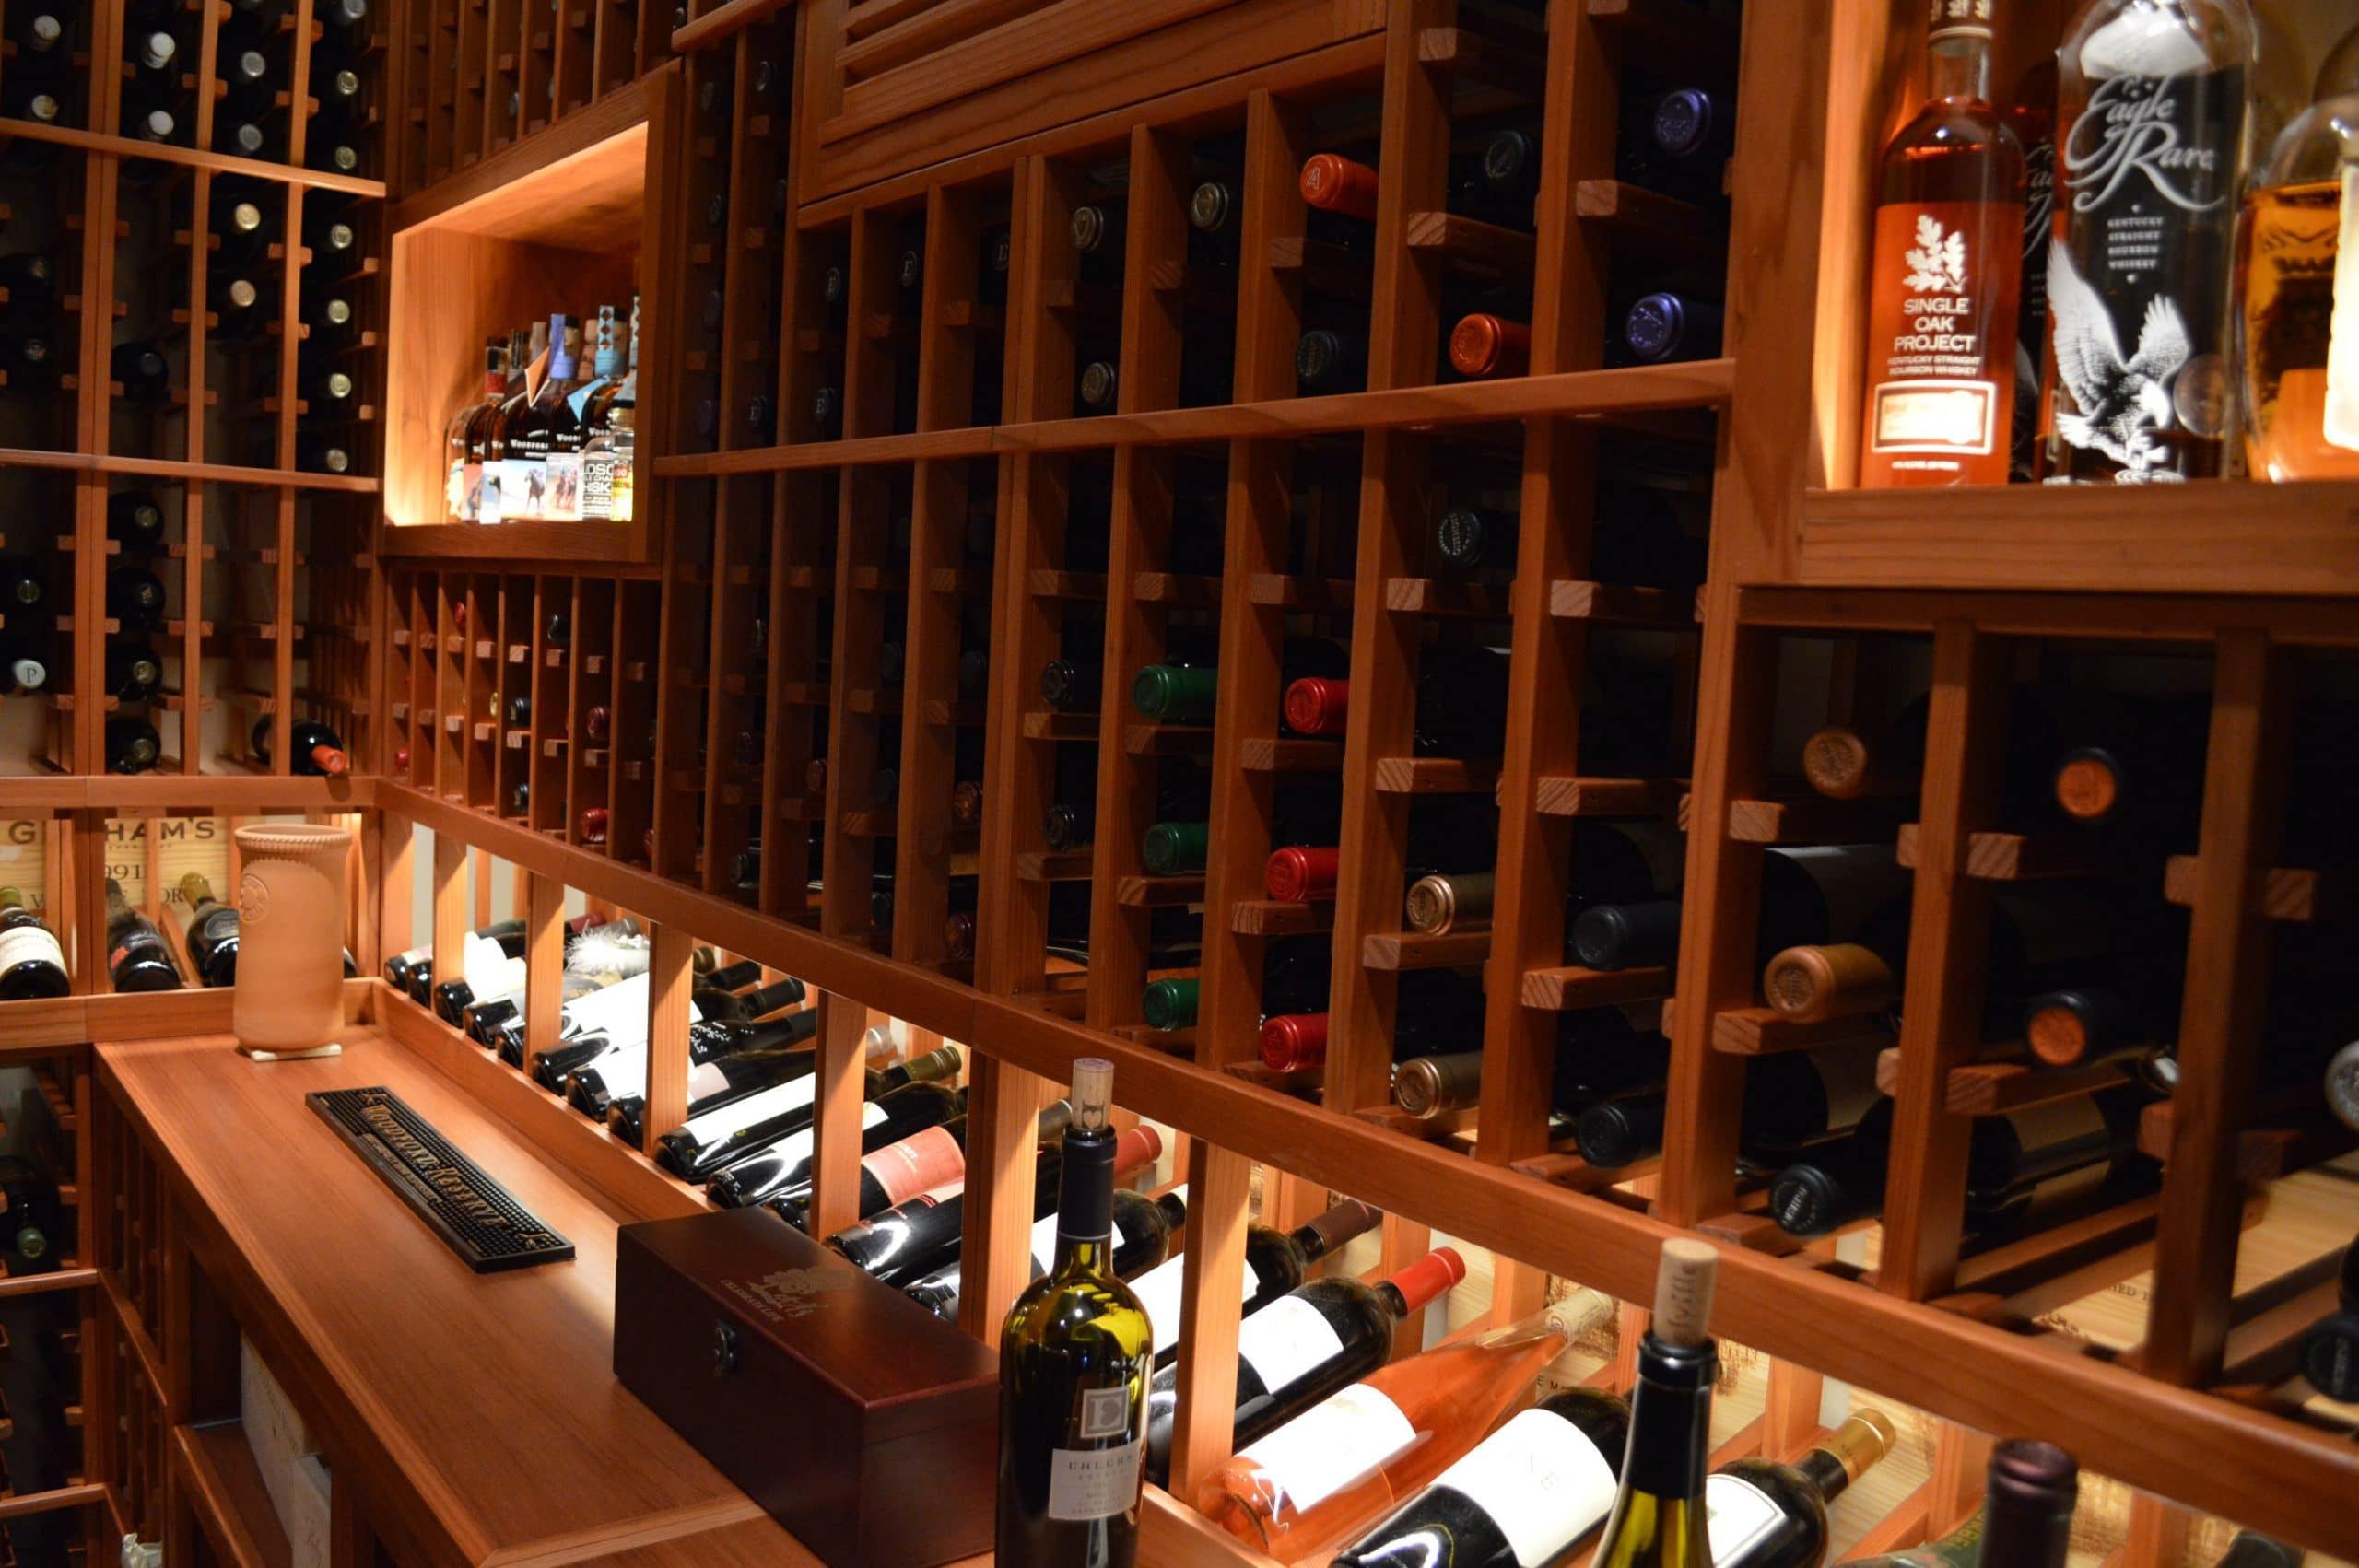 Hot Wine Cellar : Do i need a humidifier in my wine cellar tips from